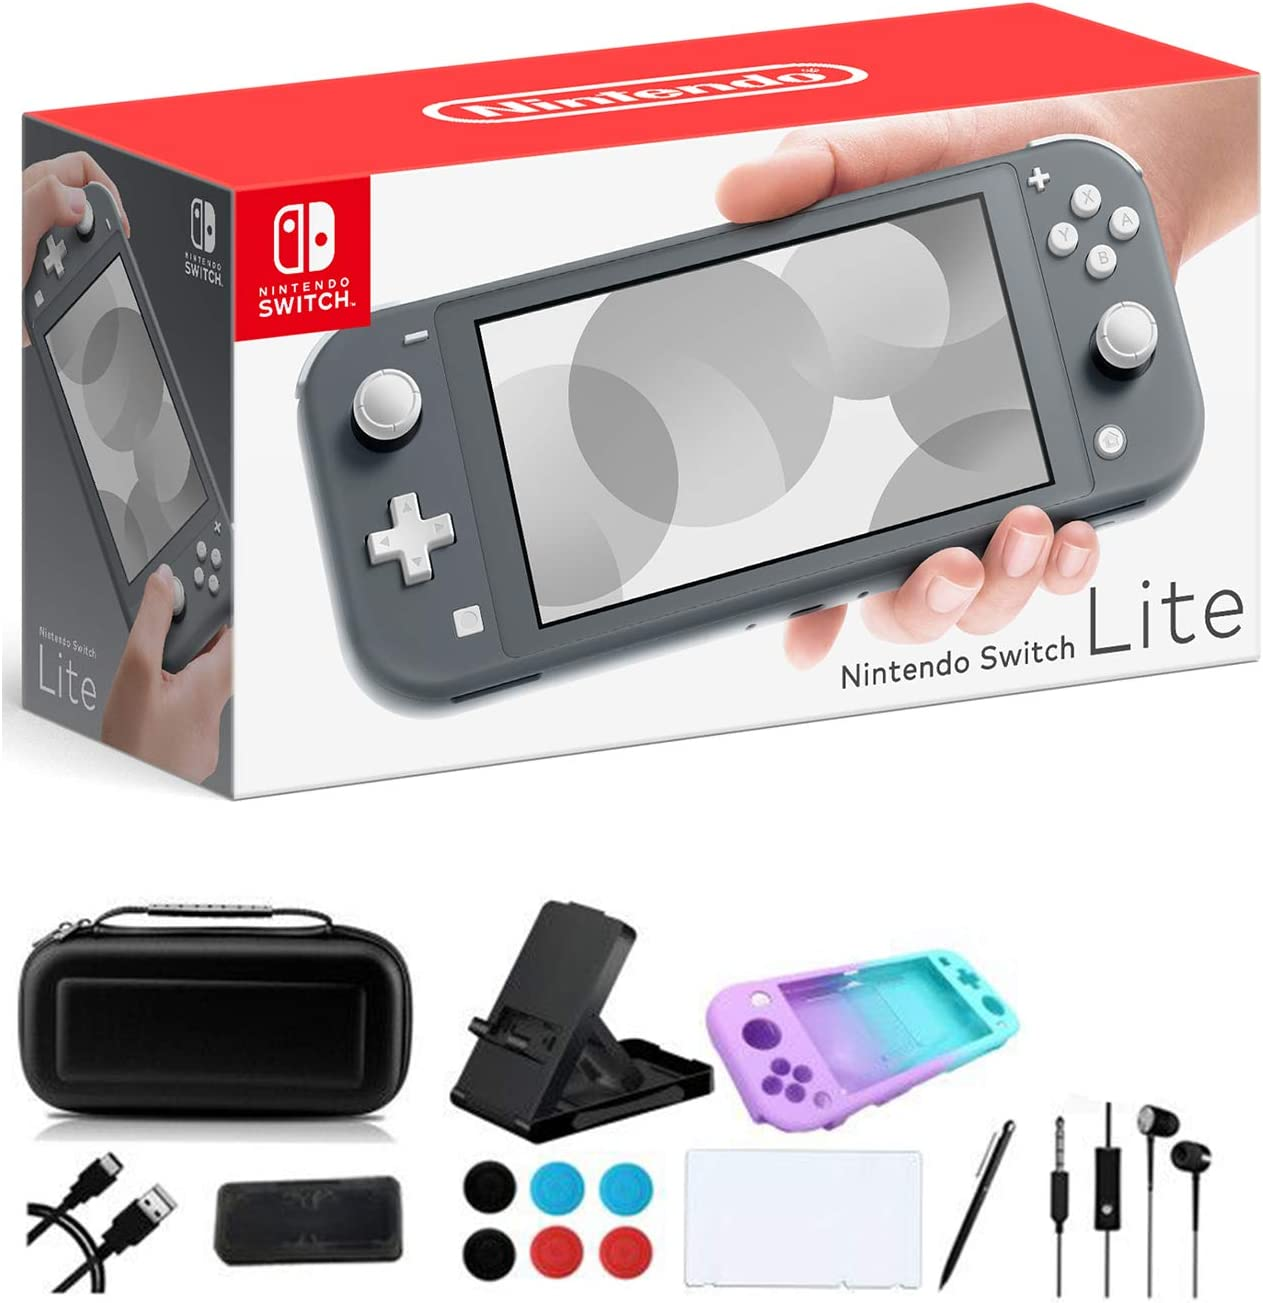 """Newest Nintendo Switch Lite - 5.5"""" Touchscreen Display, Built-in Plus Control Pad, iPuzzle 9-in-1 Carrying Case, Built-in Speakers, 3.5mm Audio Jack, 802.11ac WiFi, Bluetooth 4.1, 0.61 lb - Gray"""